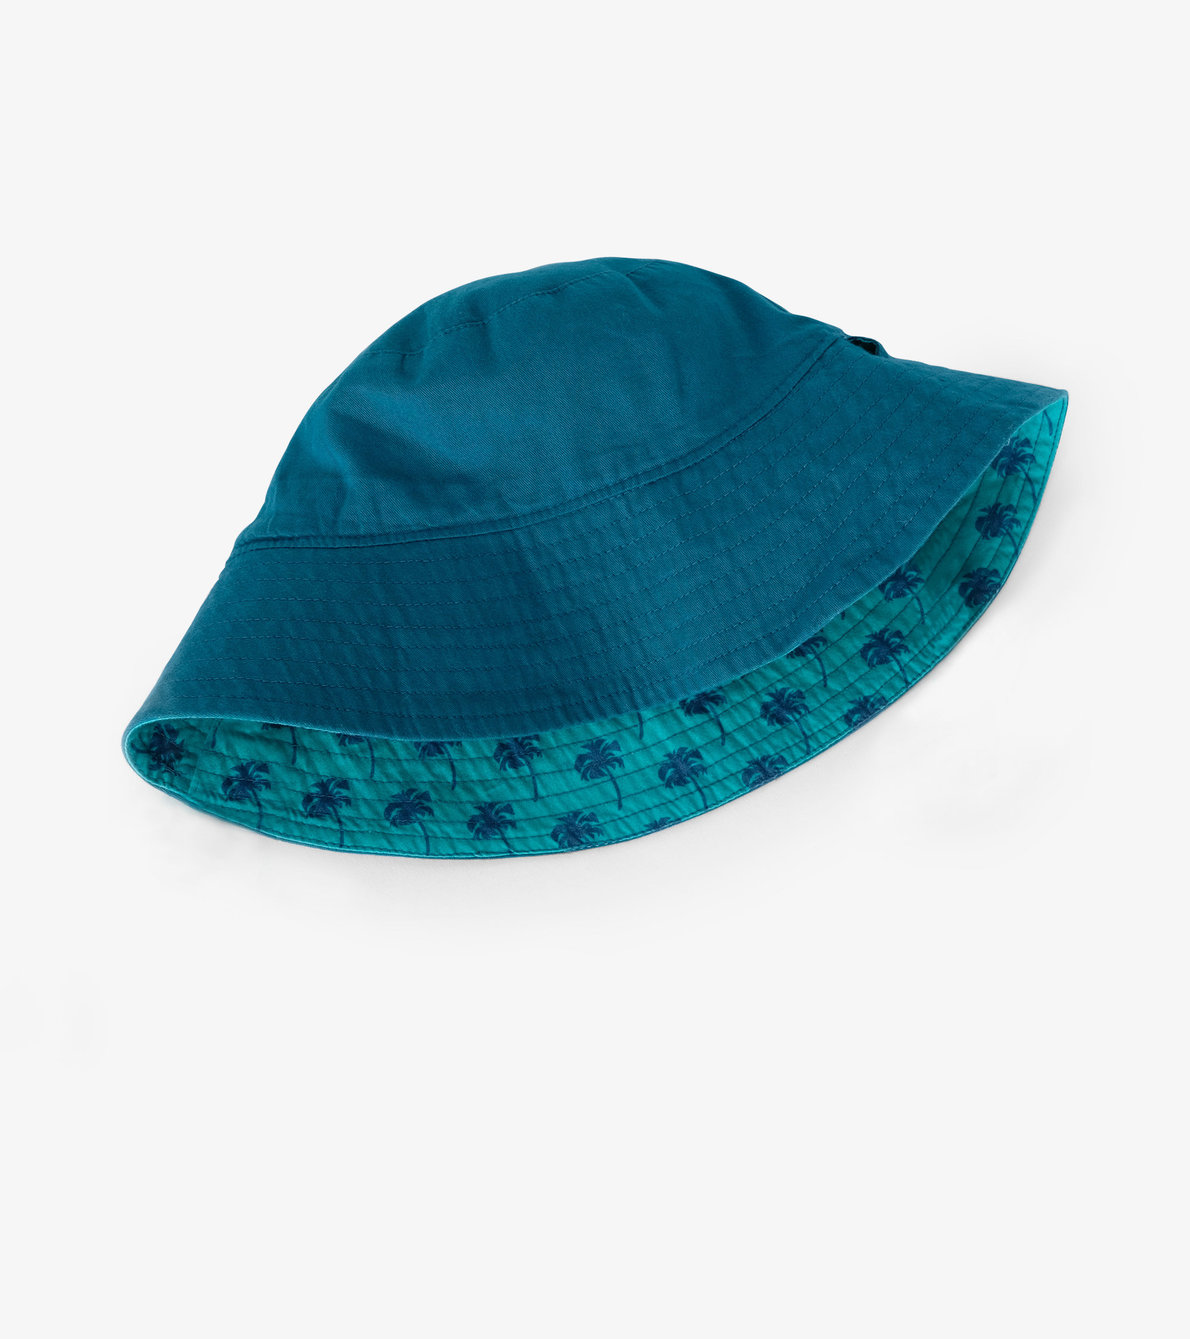 View larger image of Tropical Palms Reversible Sun Hat